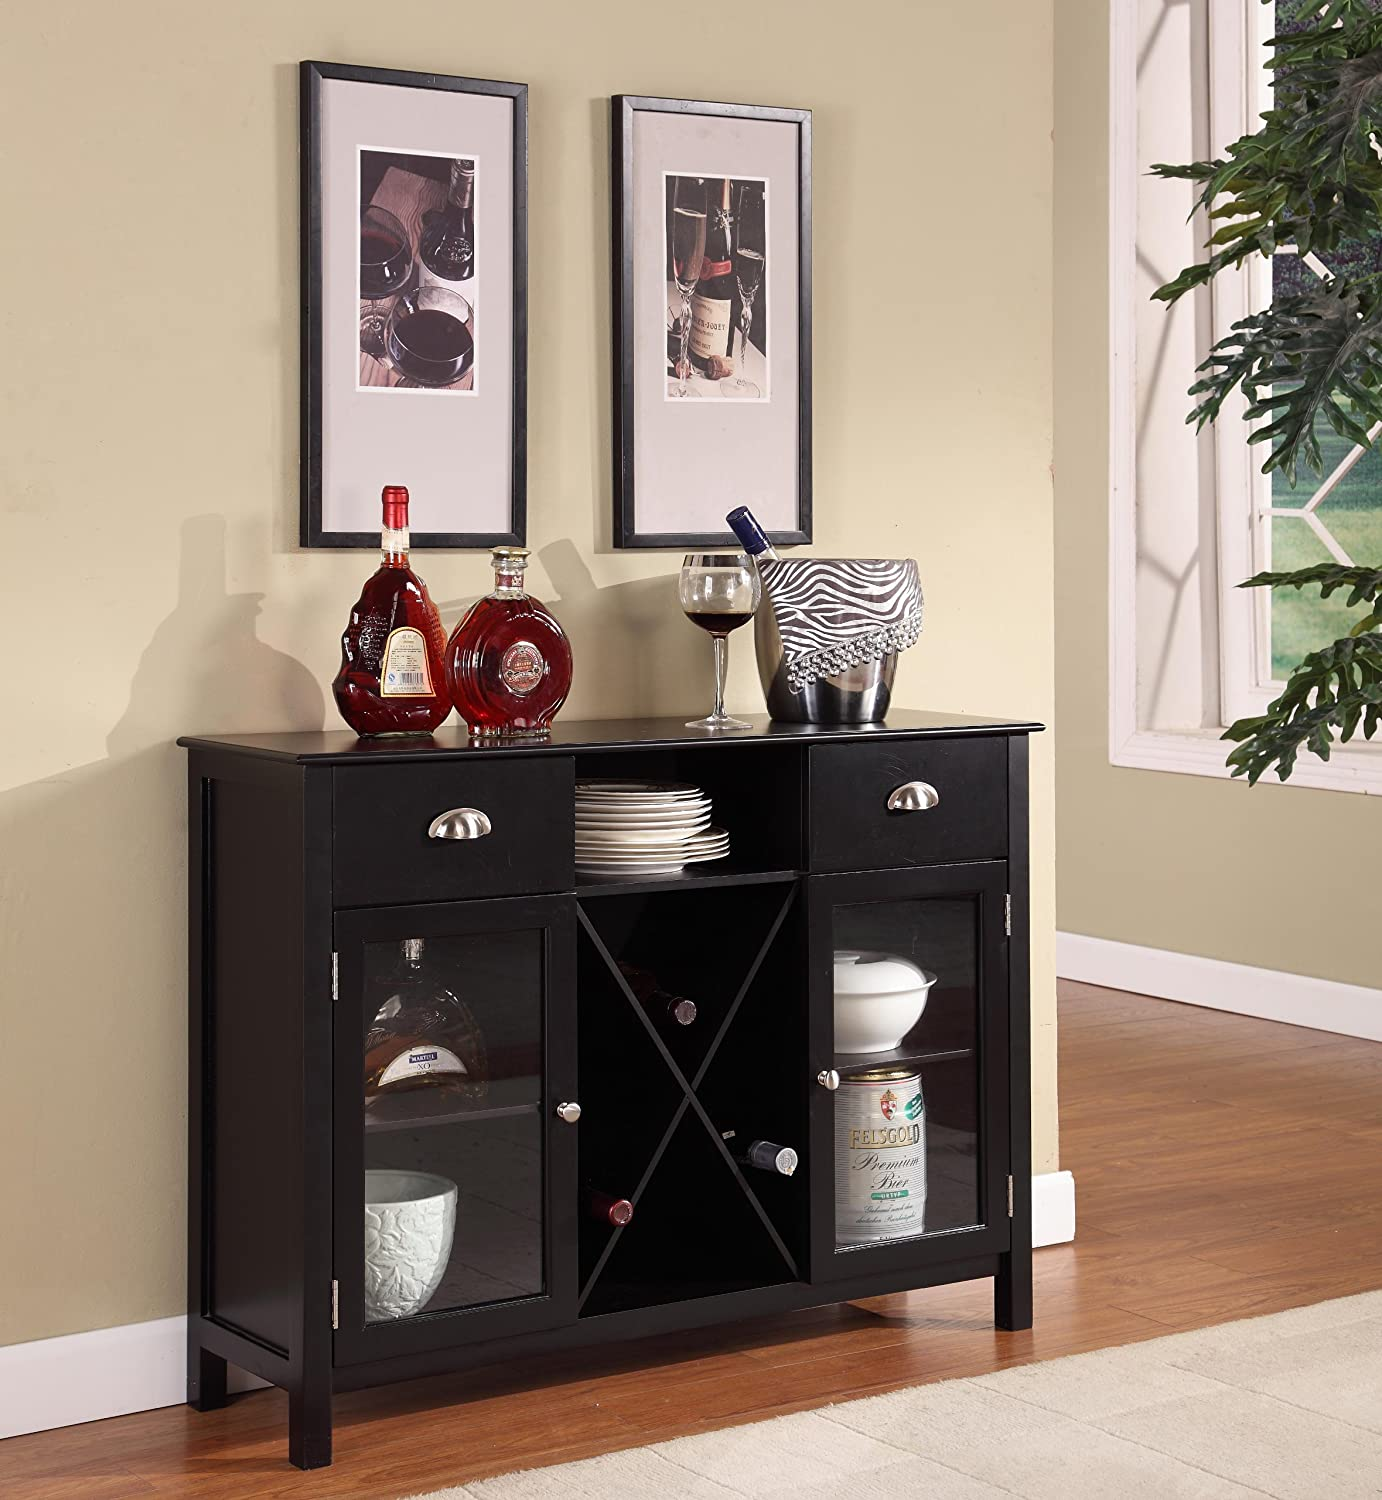 amazoncom kings brand wr1242 wood wine rack console sideboard table with drawers and storage black finish kitchen dining wooden sideboard furniture